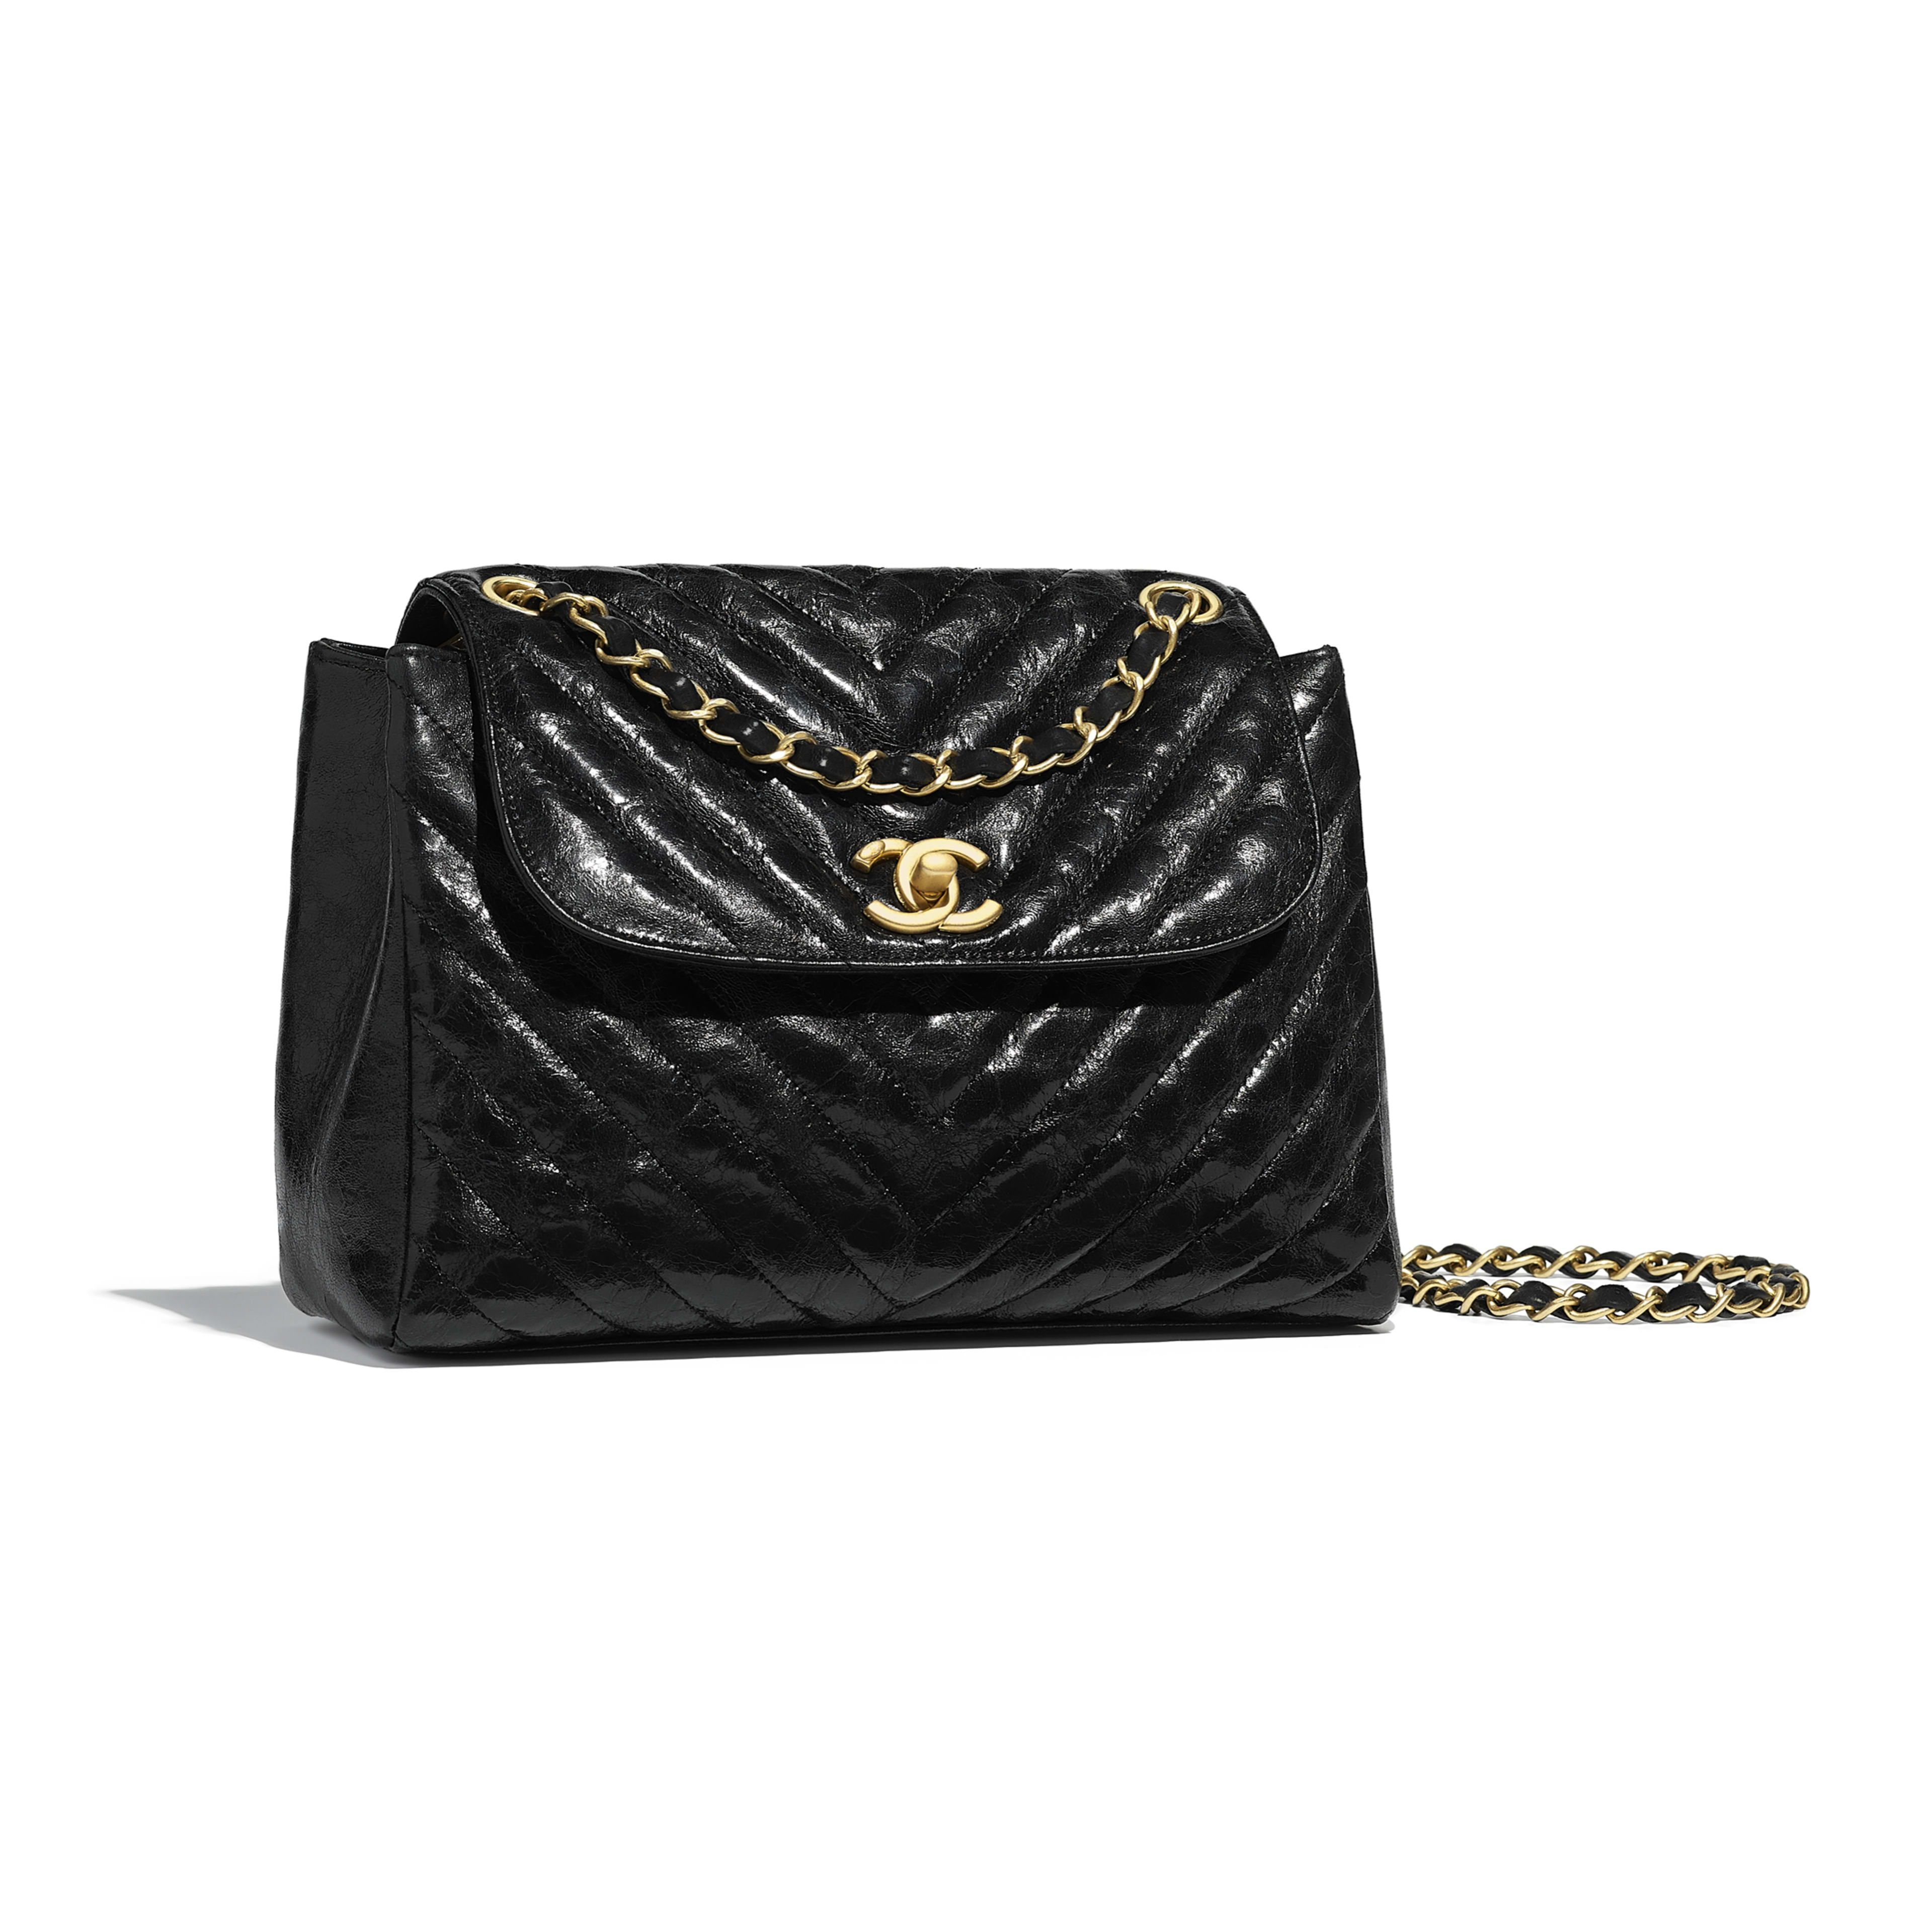 e3e123f8be Flap Bag - Black - Aged Lambskin   Gold-Tone Metal - Default view - see full  sized version